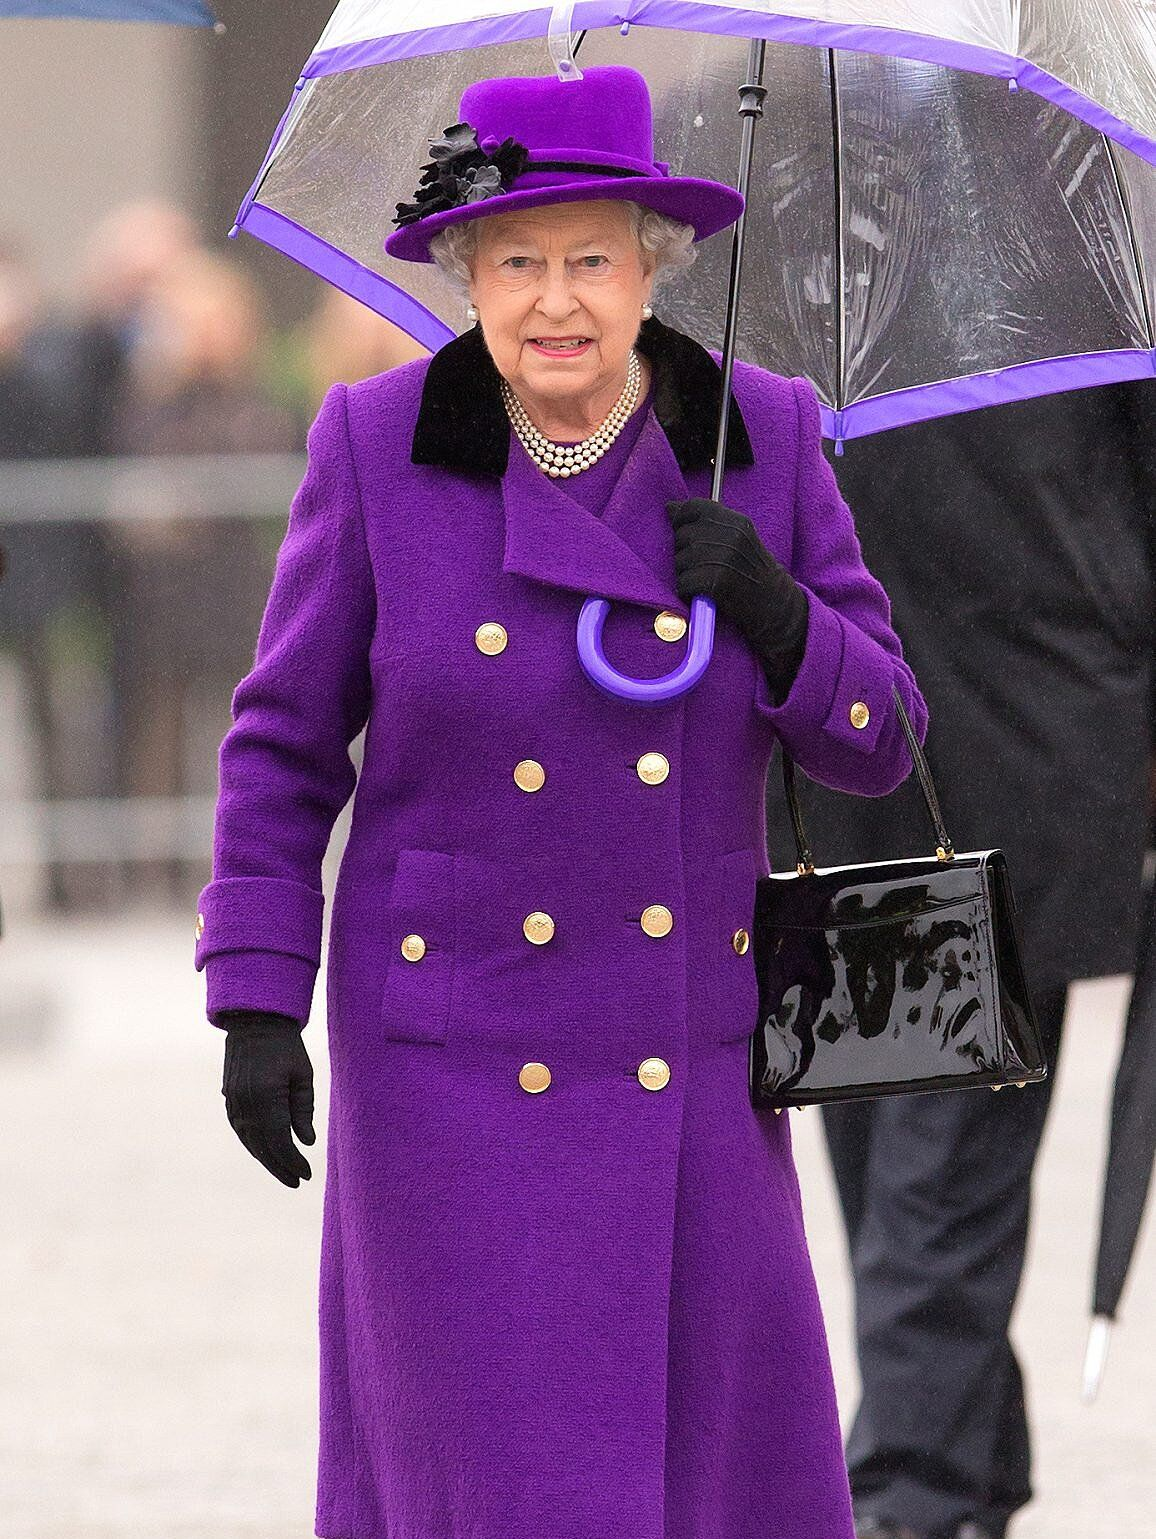 How Queen Elizabeth S Spectrum Of Rainbow Of Coat Dresses Acts Like A Mood Ring Orange Midi Dress Purple Outfits Rainbow Fashion [ 1539 x 1156 Pixel ]